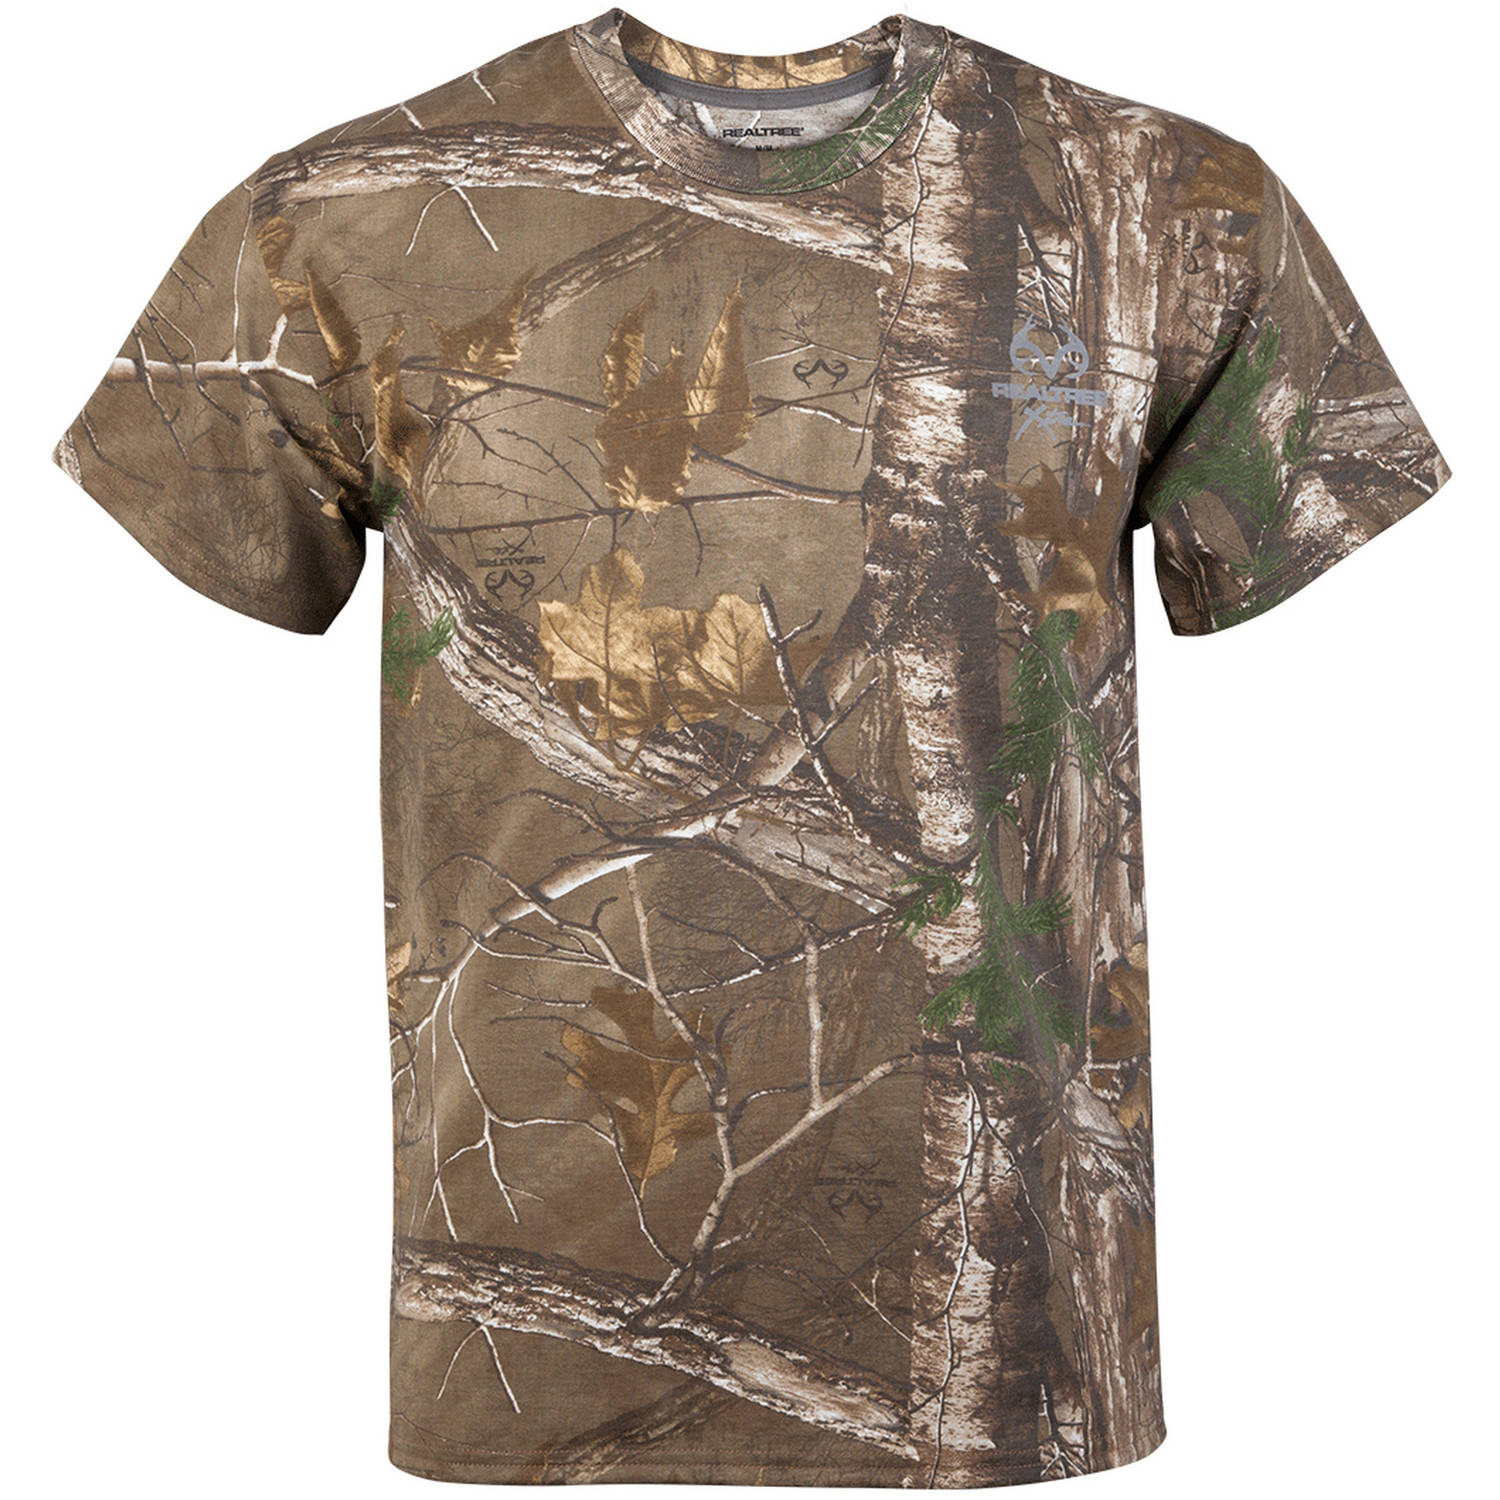 Realtree Men's Camo Short Sleeve Crew Tee